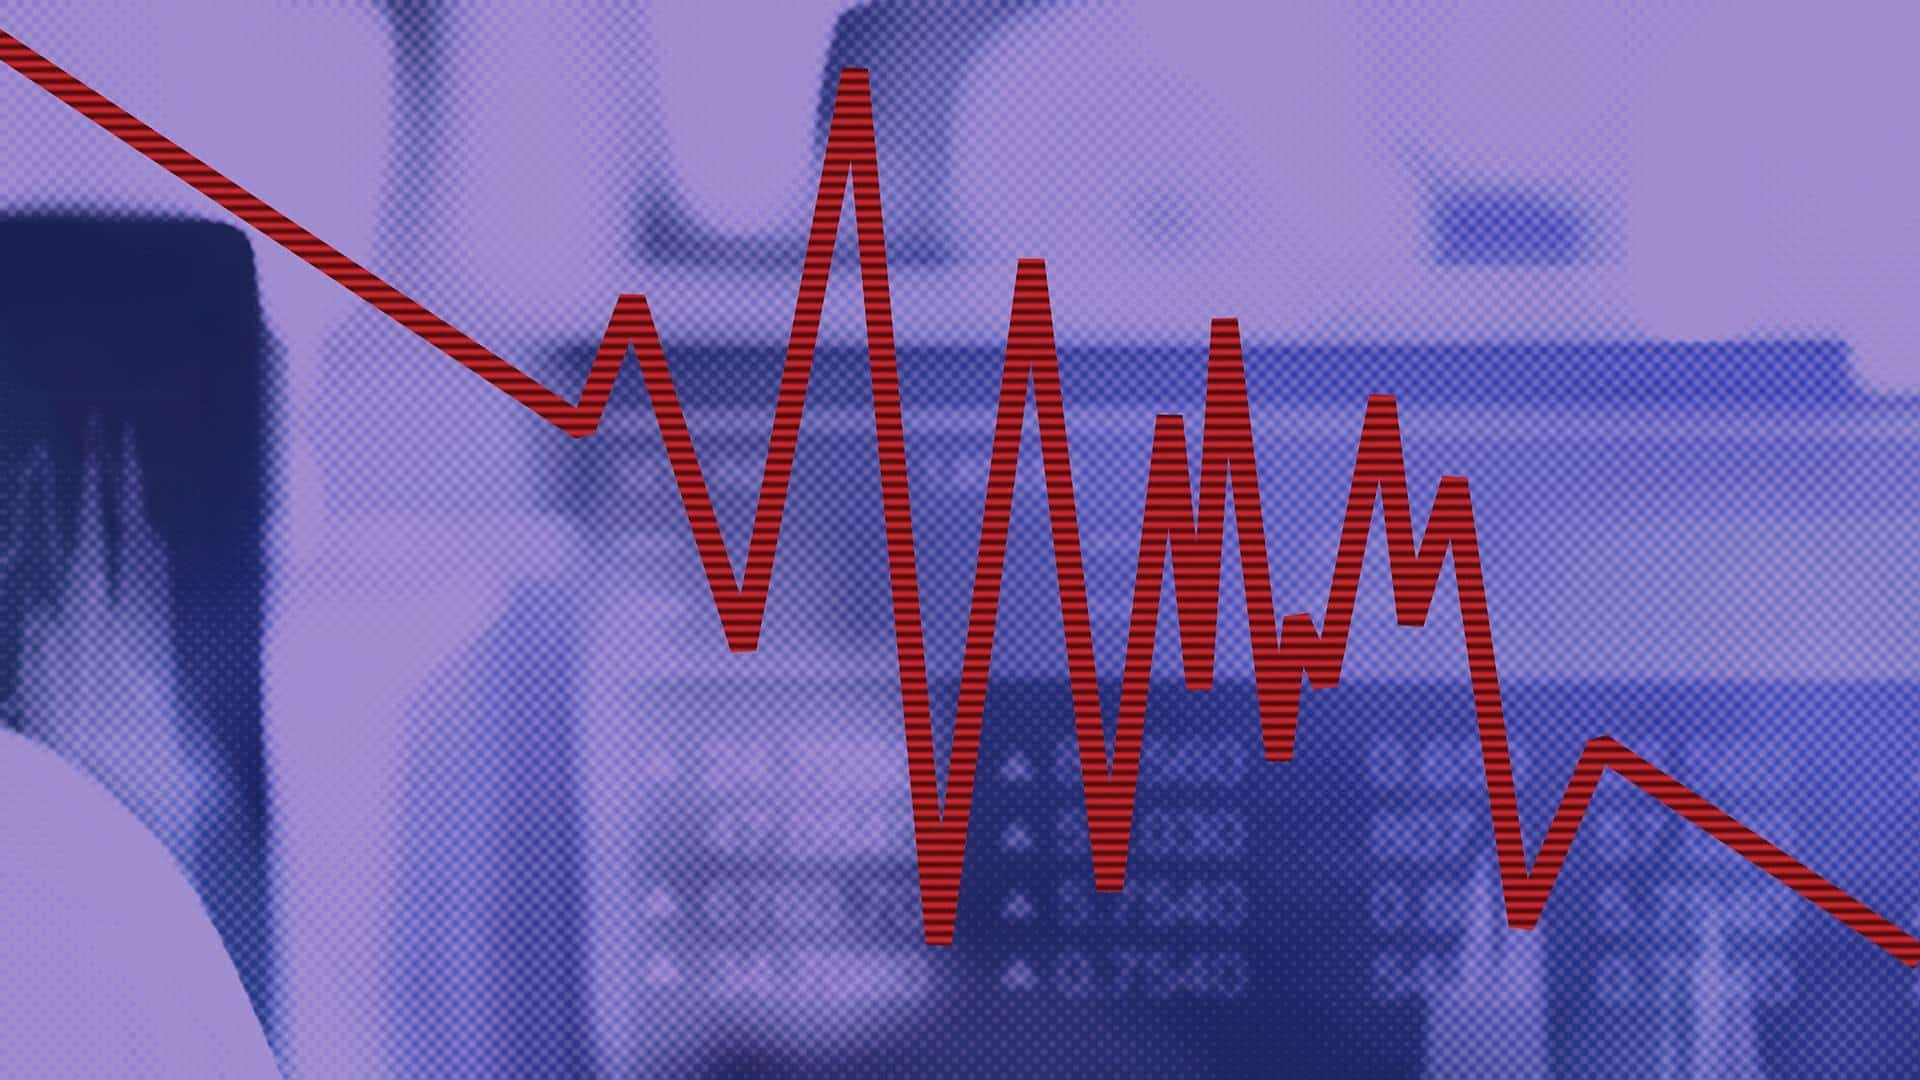 Image of a purple background with a red downtrend line